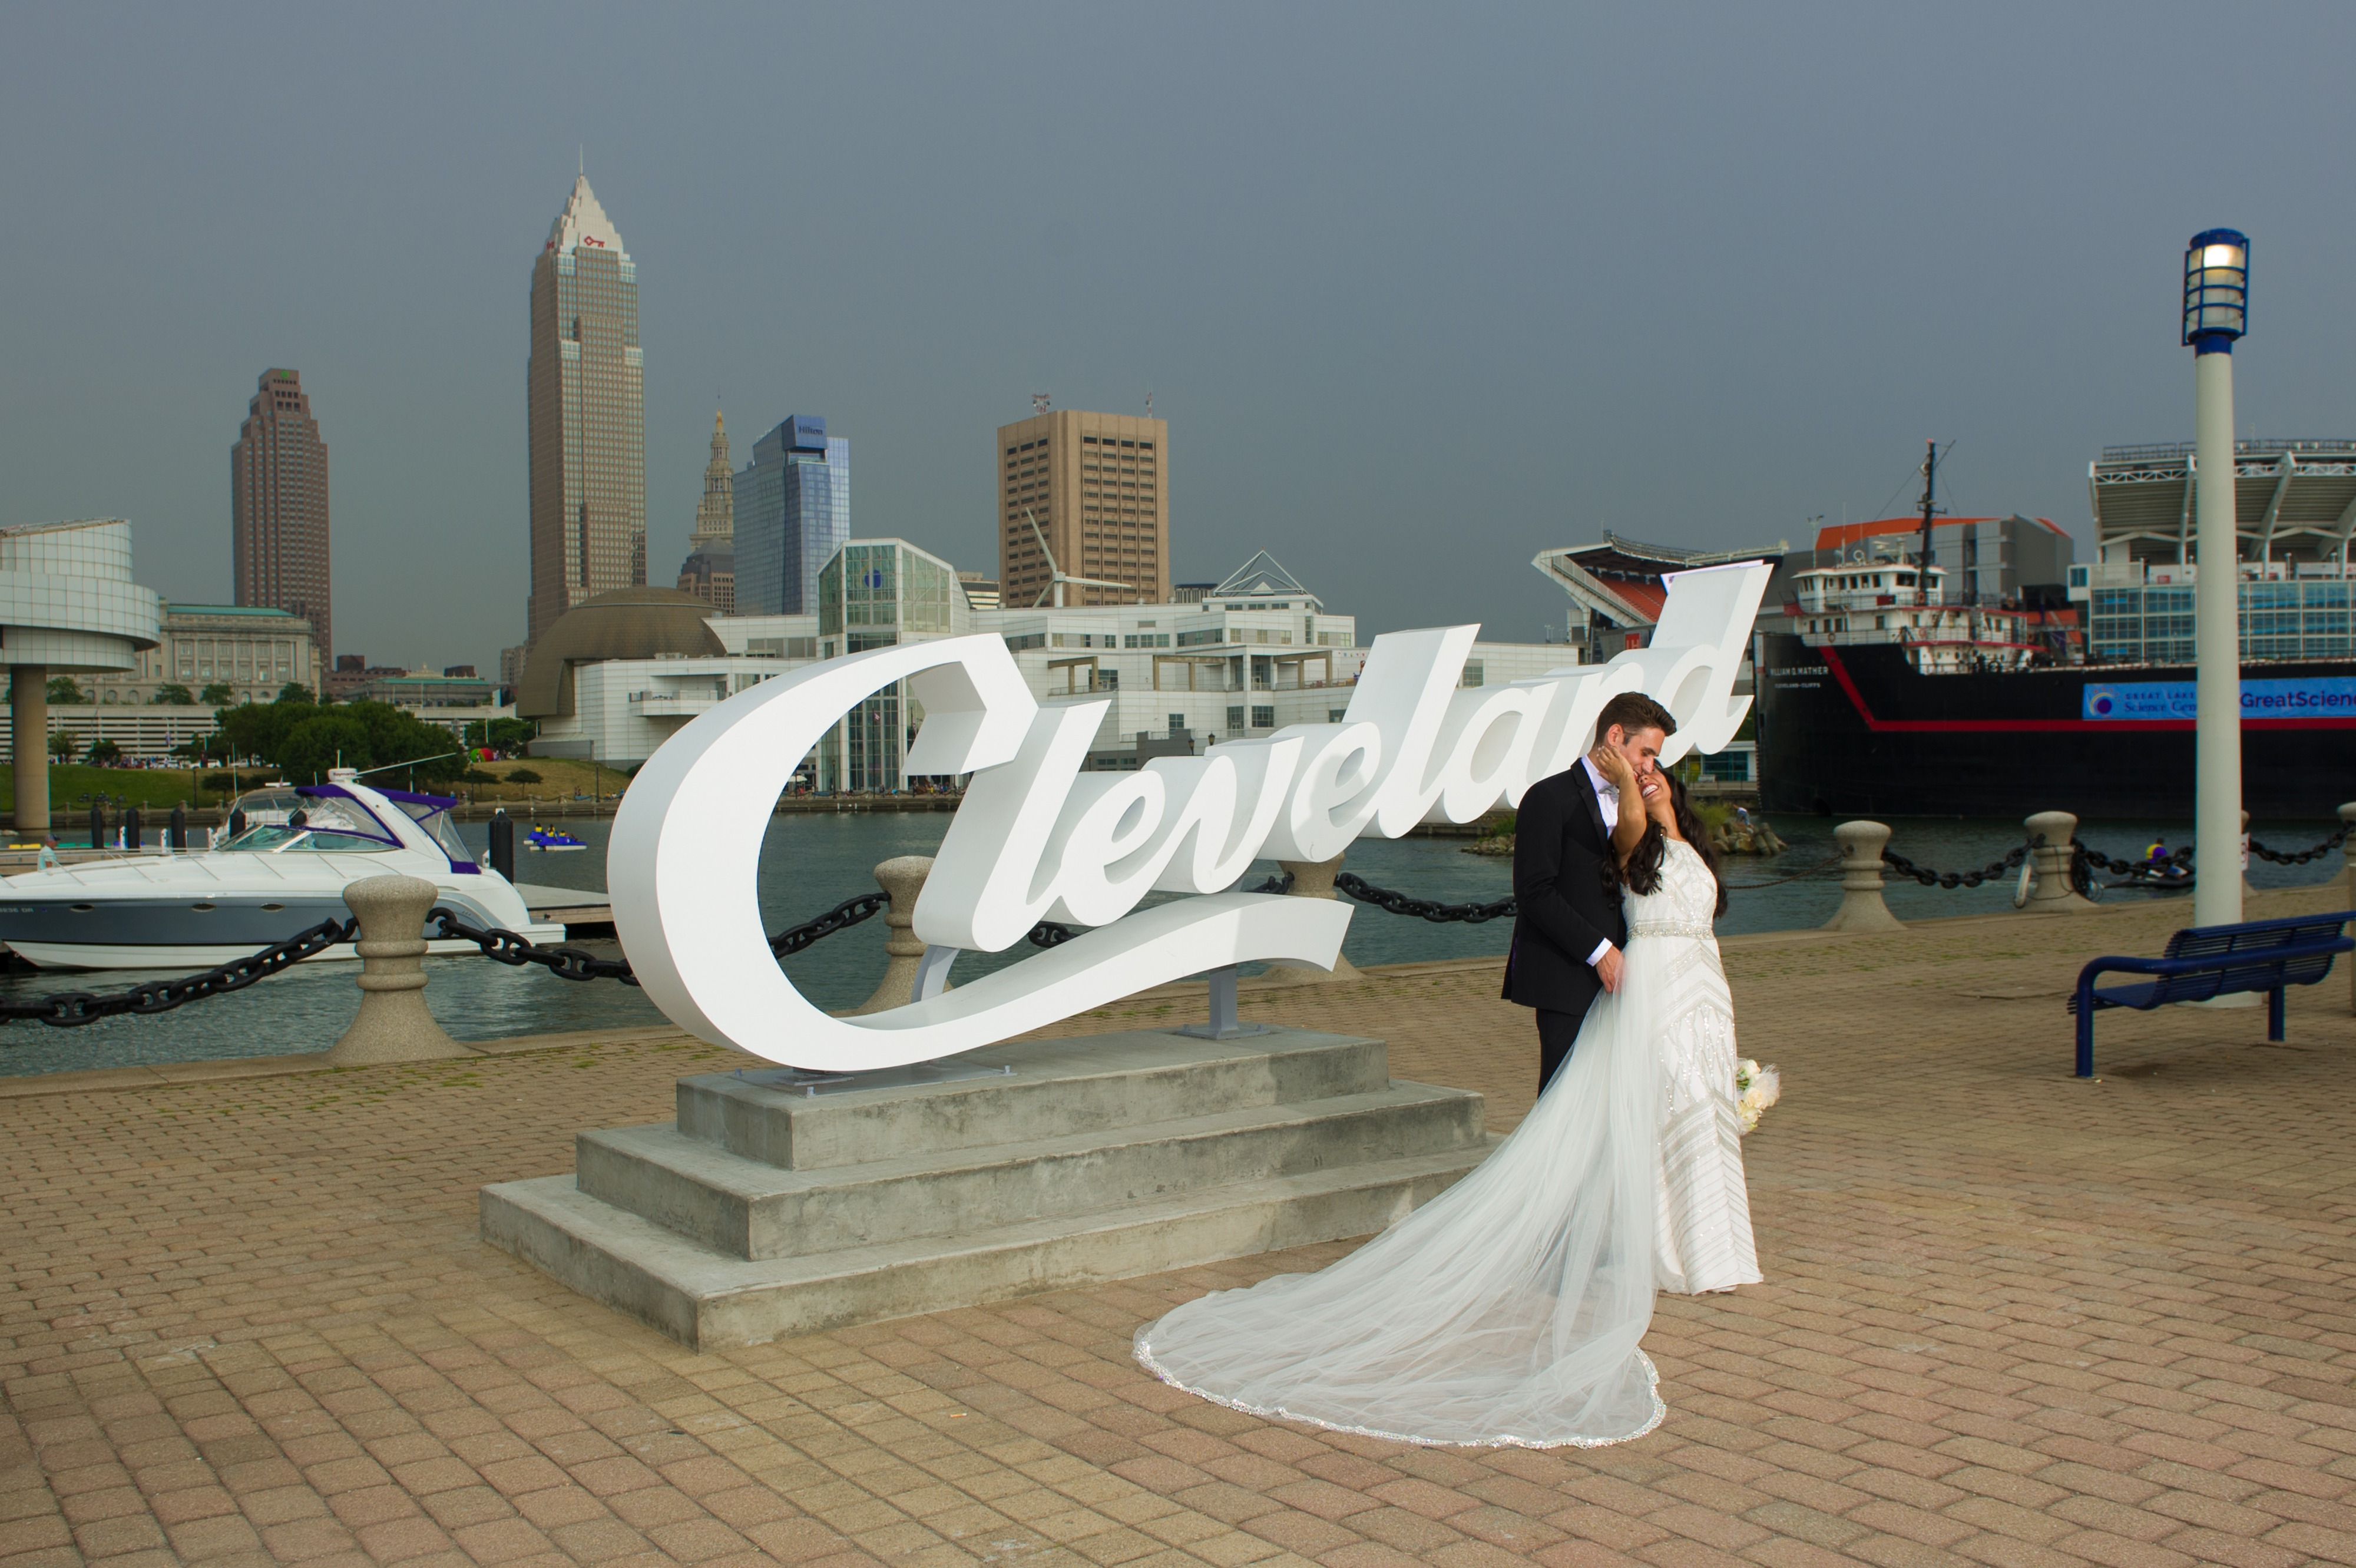 Client Image Galleries Weddings & Events